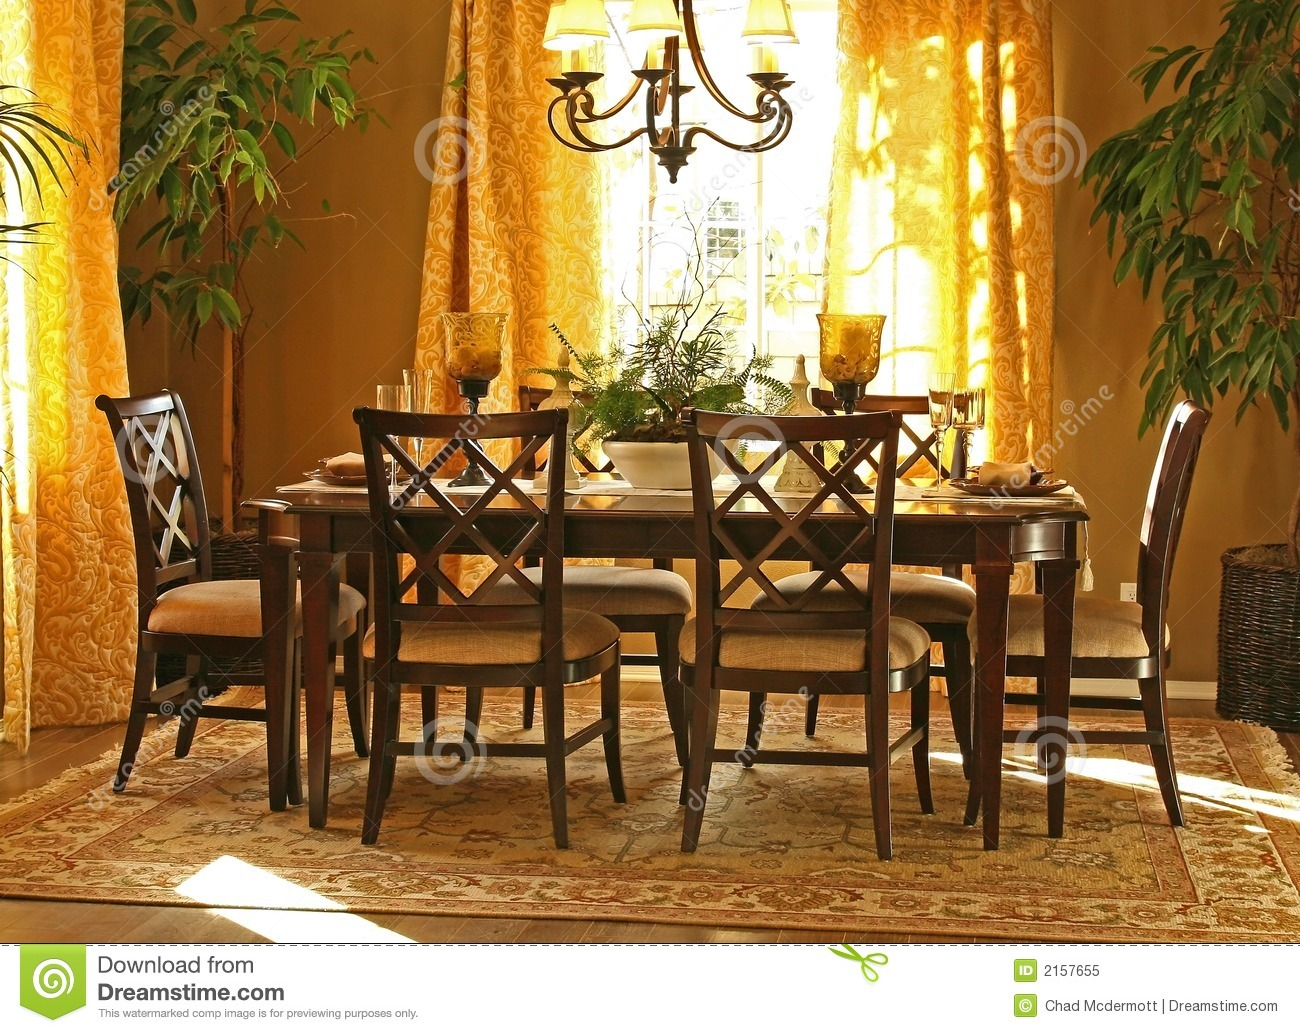 Model home interiors royalty free stock photo image 2157655 for Model home interior photos